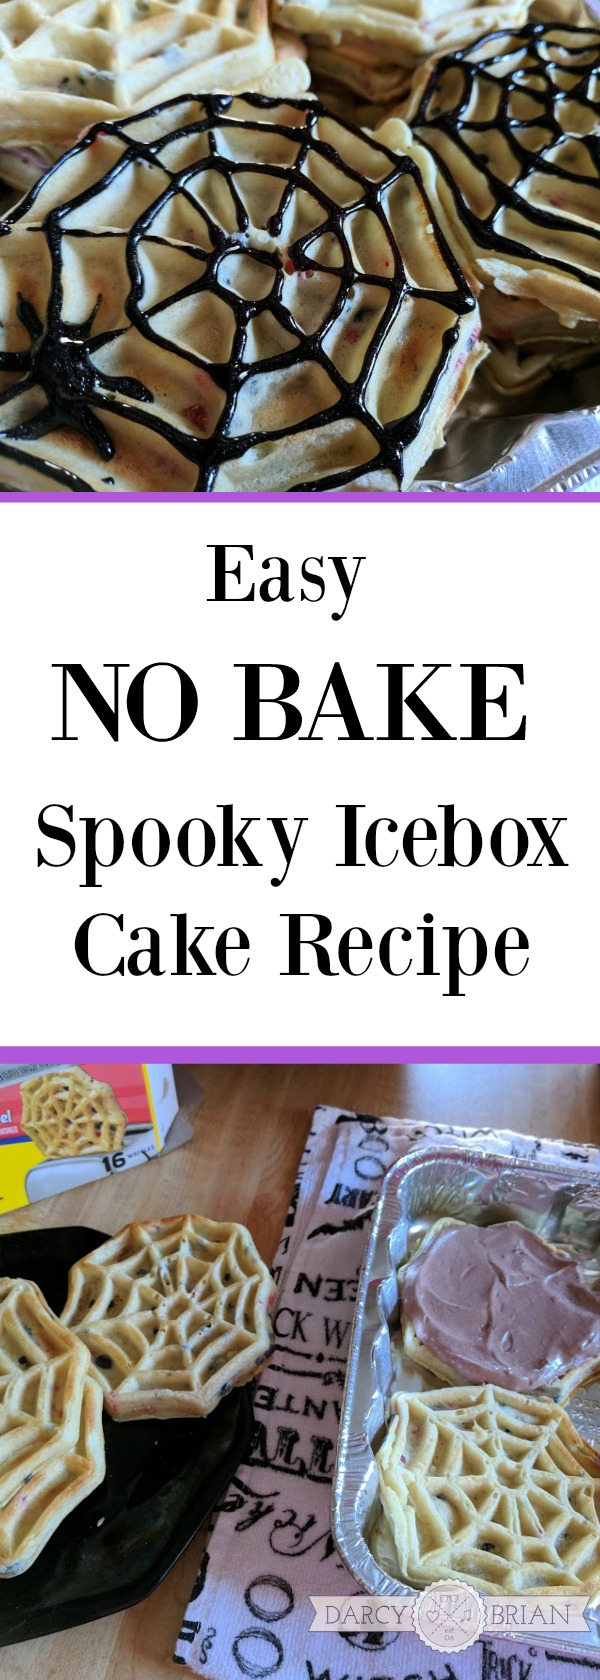 [AD] Looking for an easy no bake ice box cake #recipe for Halloween? This Spooky Icebox Cake recipe puts a twist on a classic. Great fall treat the kids can make with you for an after school snack or a Halloween party! #LeggoMyEggo #HearTheNews #AD